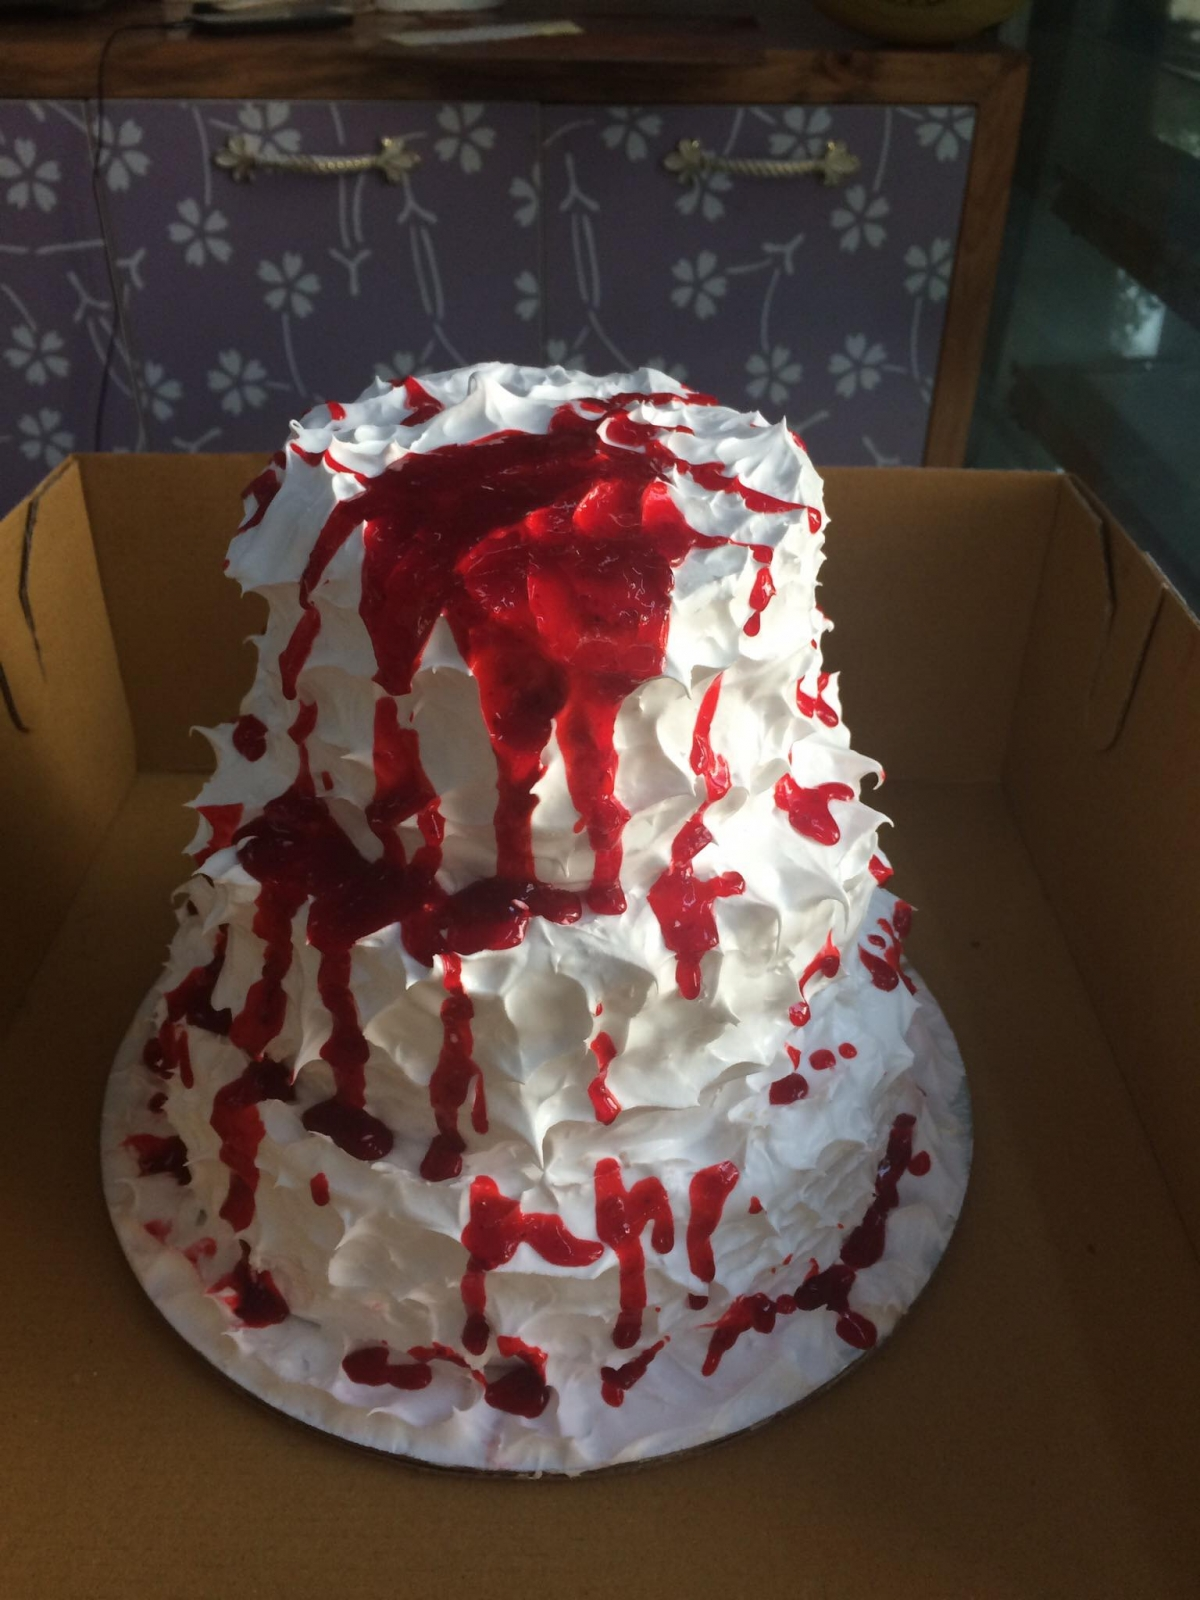 The price of the cake is dependent on the size and the meticulousness of the bakers involved in making them.